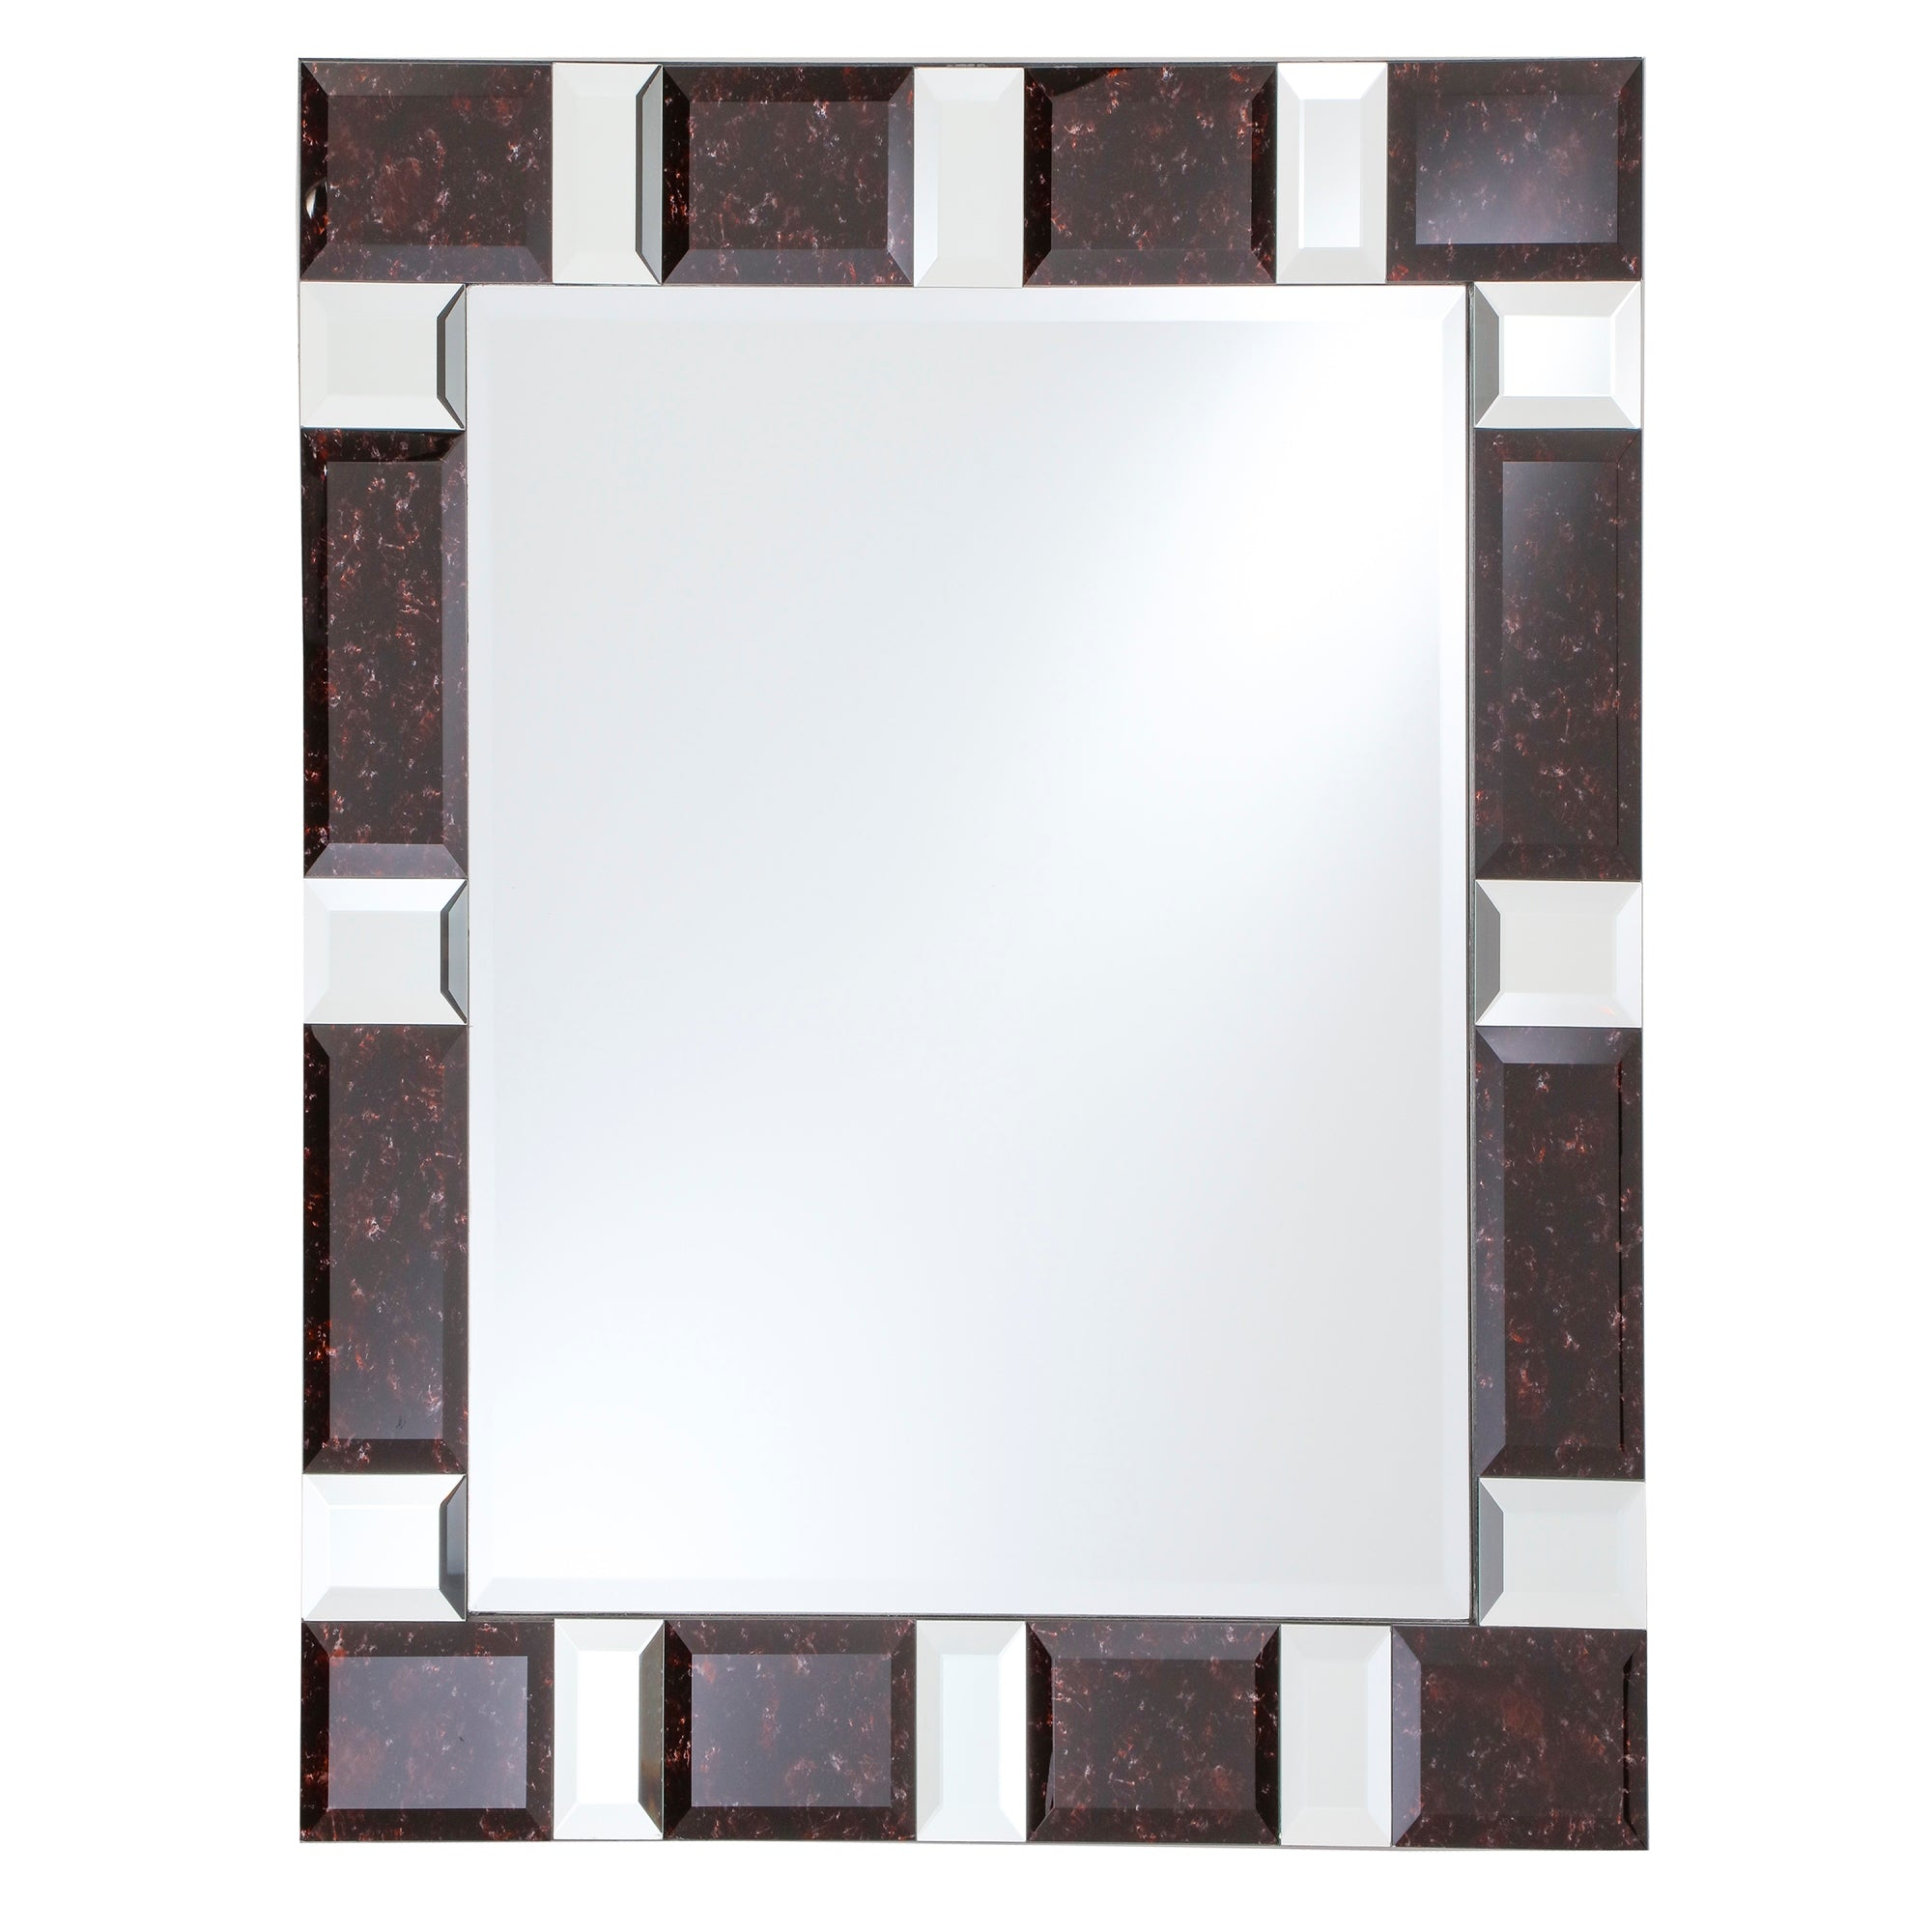 Breeze Point M00218 30 X 40 Rectangular Beveled Large Wall Mirror Decorative Mirror Framed Black Maroon Marble Glass Tiles And Mirrored Beveled Border Black Silver Breeze Point Home Decor